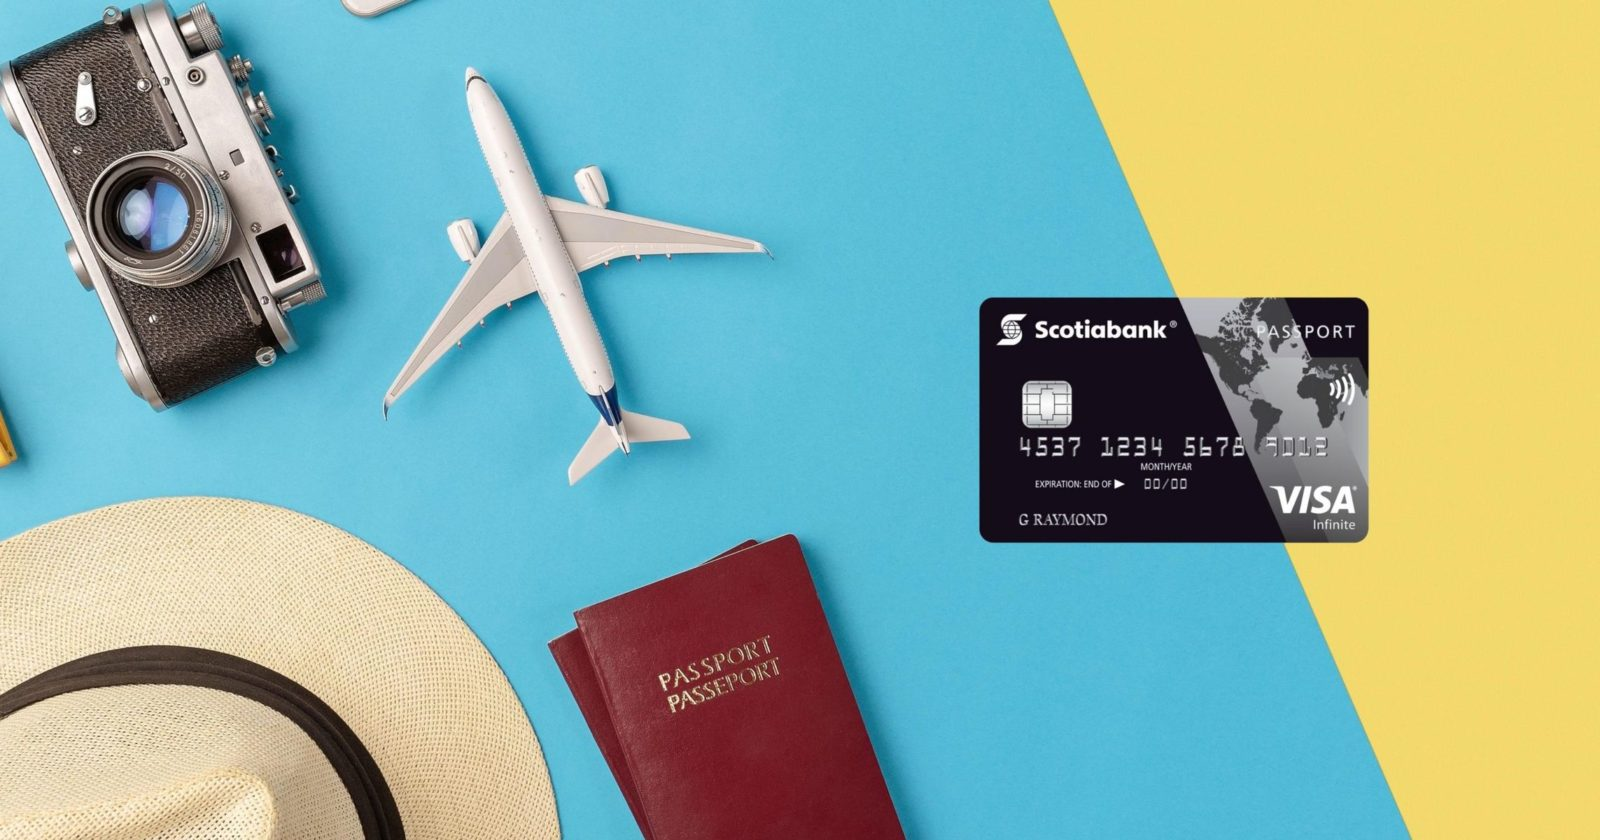 Up to 30,000 points with the Scotiabank Passport™ Visa Infinite* Card | milesopedia